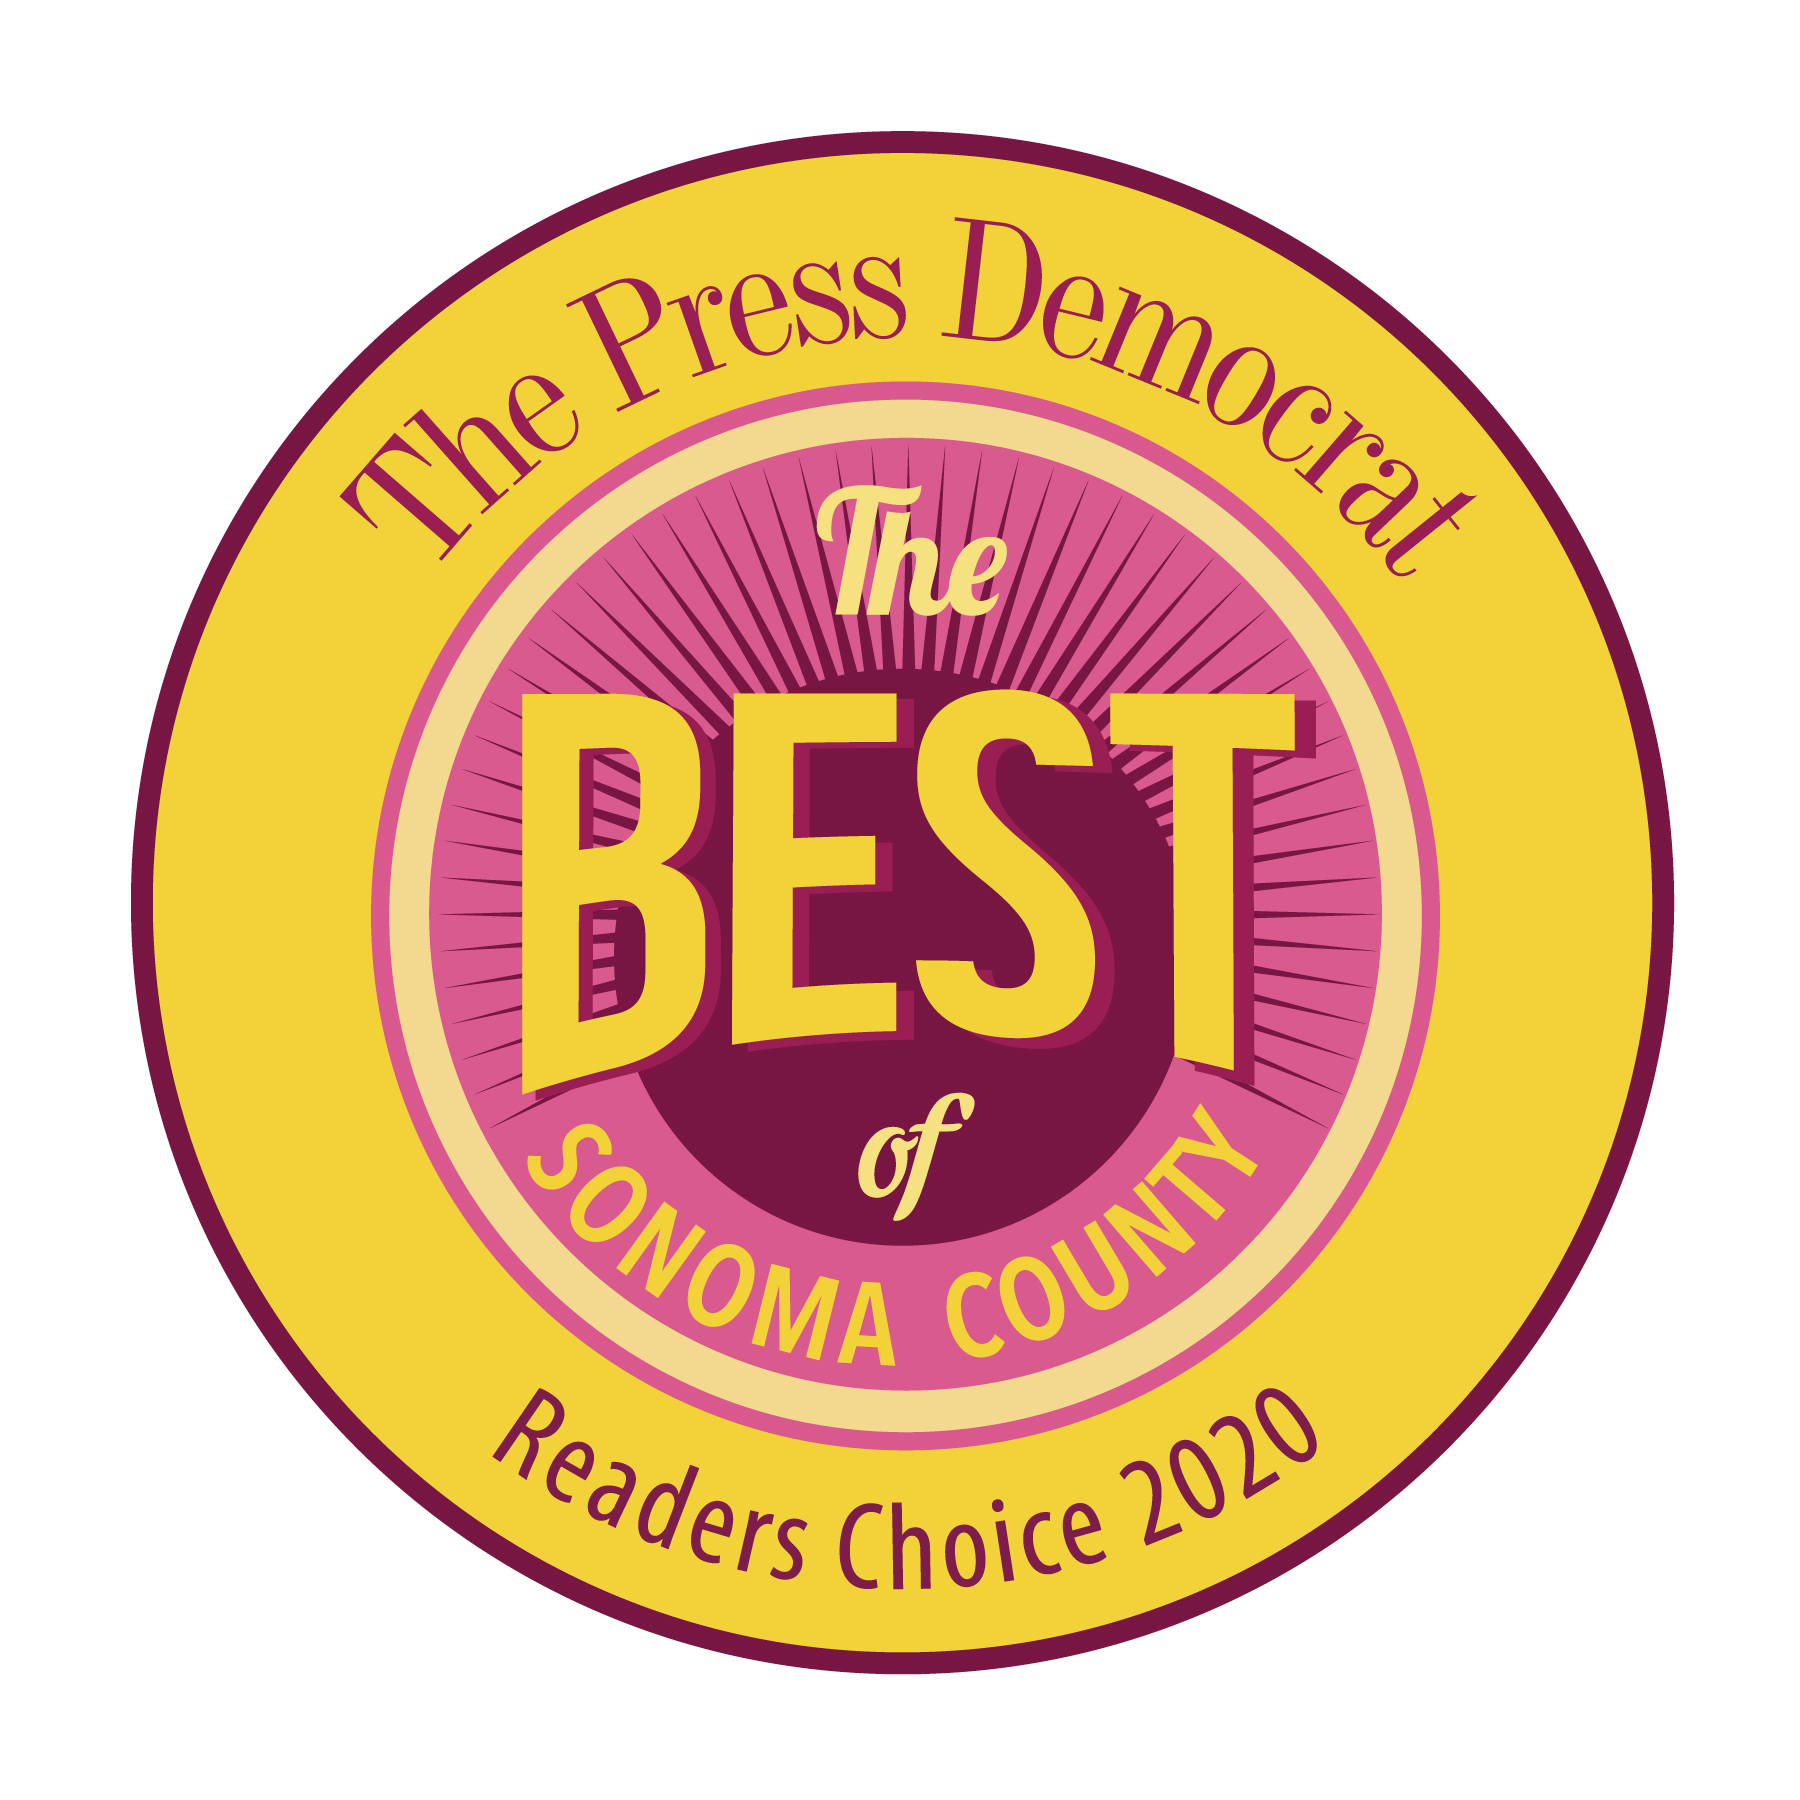 Best of Sonoma County Readers' Choice 2020 Winner